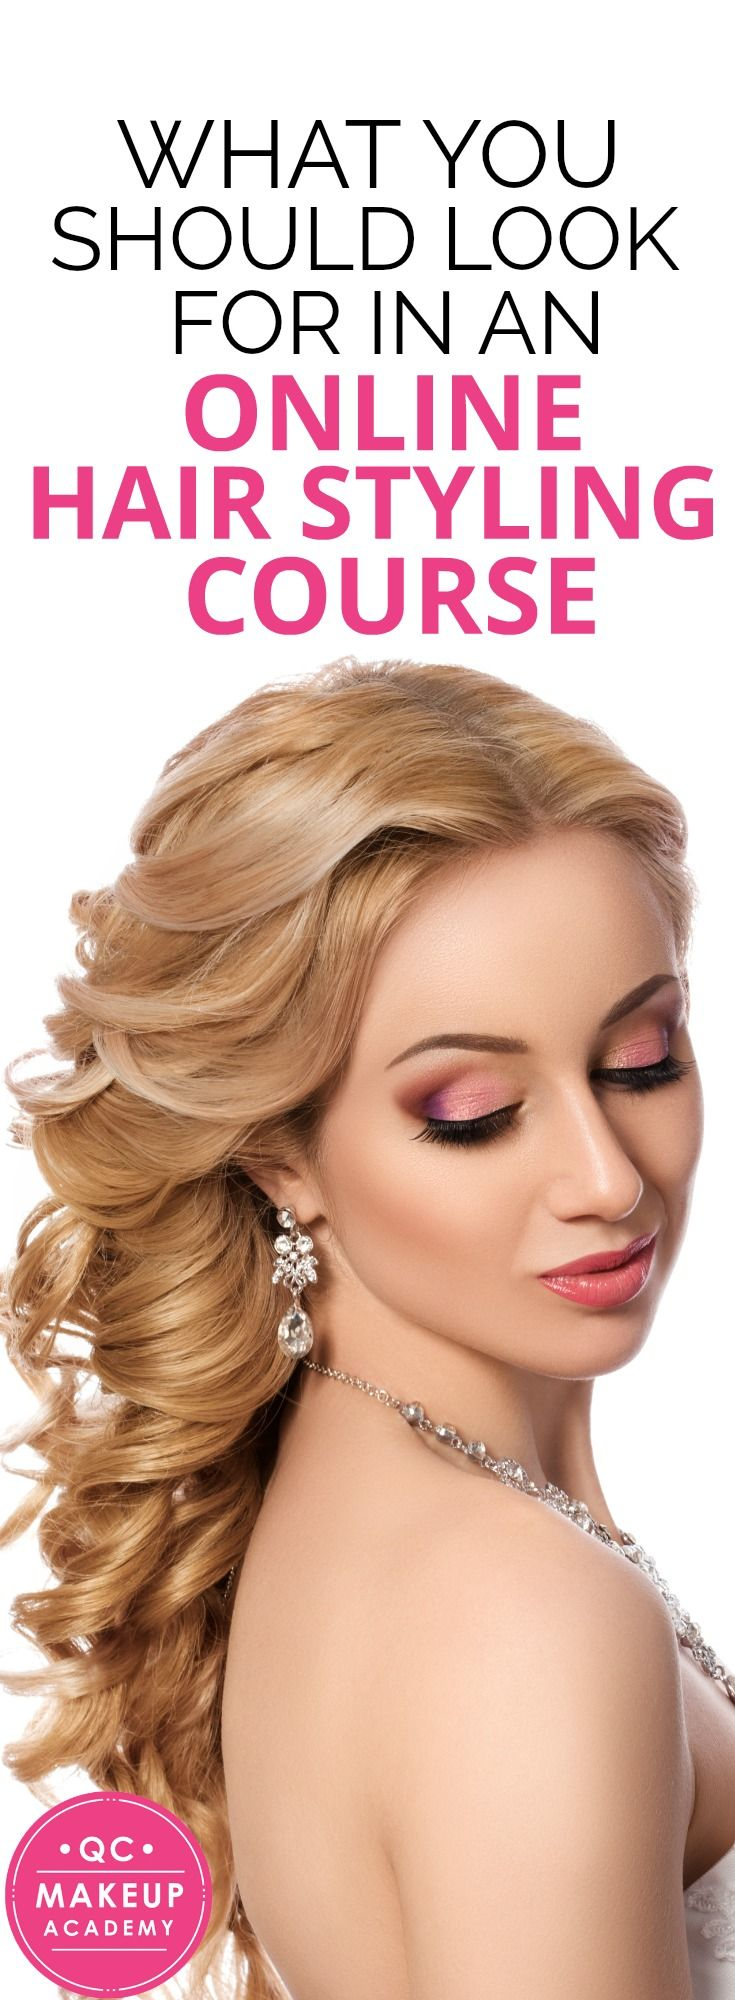 Online Hair Styling Course Interesting The 25 Best Online Makeup Courses Ideas On Pinterest  Online .